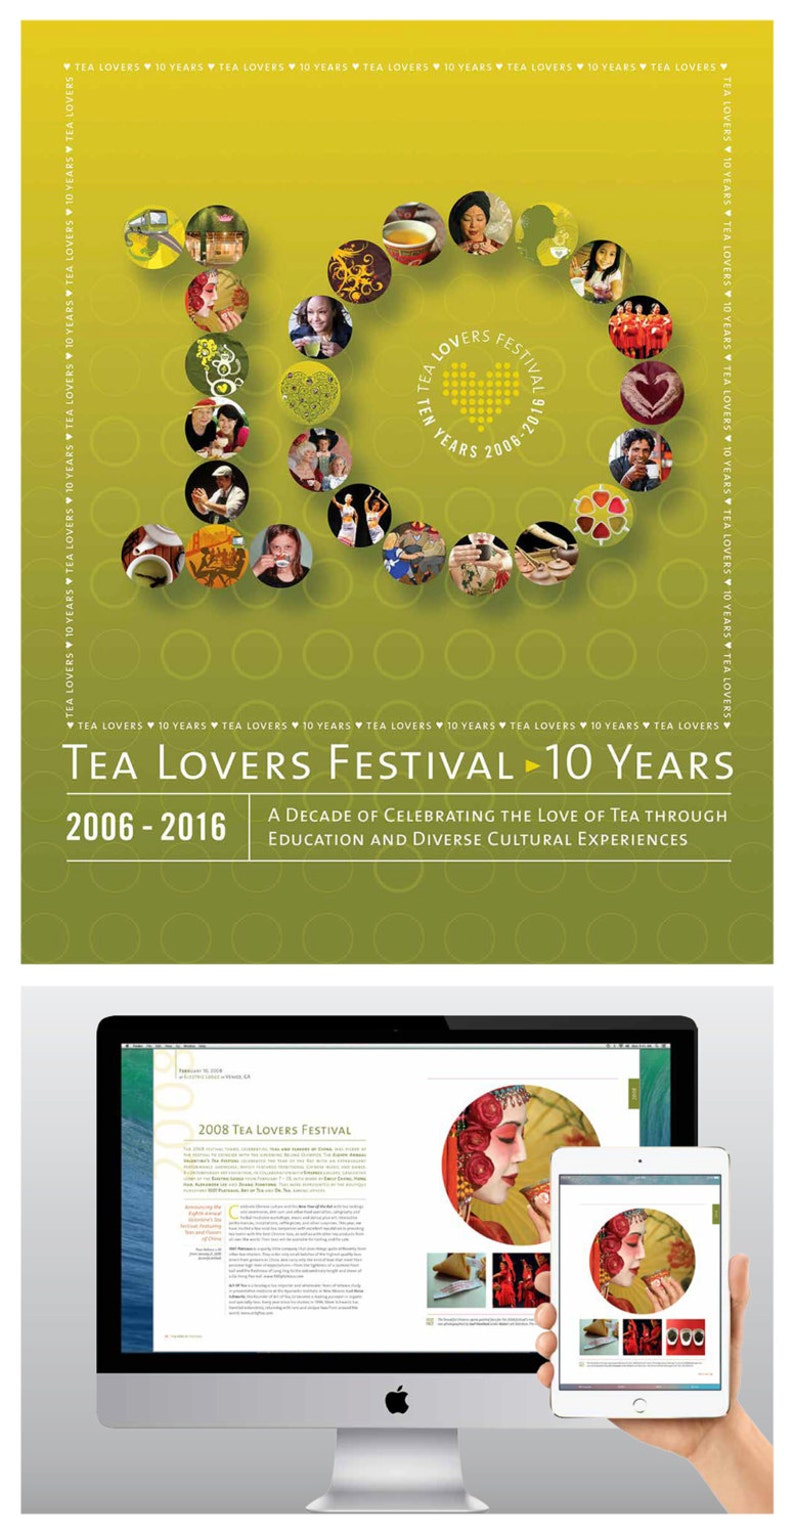 Tea Lovers Festival: 10 Years  Digital Version image 0